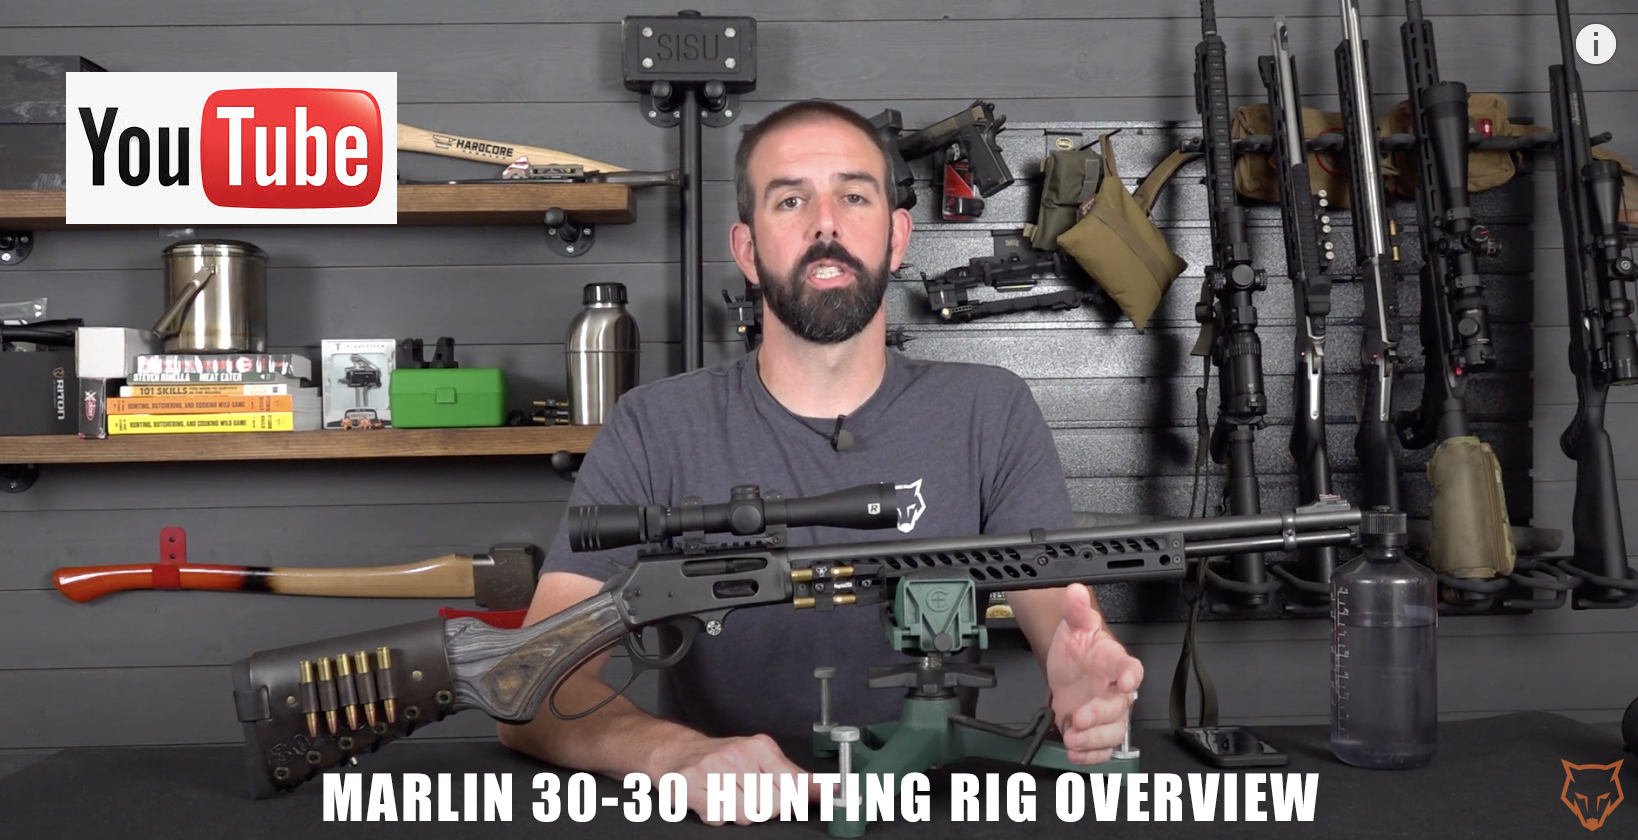 MARLIN 30-30 HUNTING RIG OVERVIEW